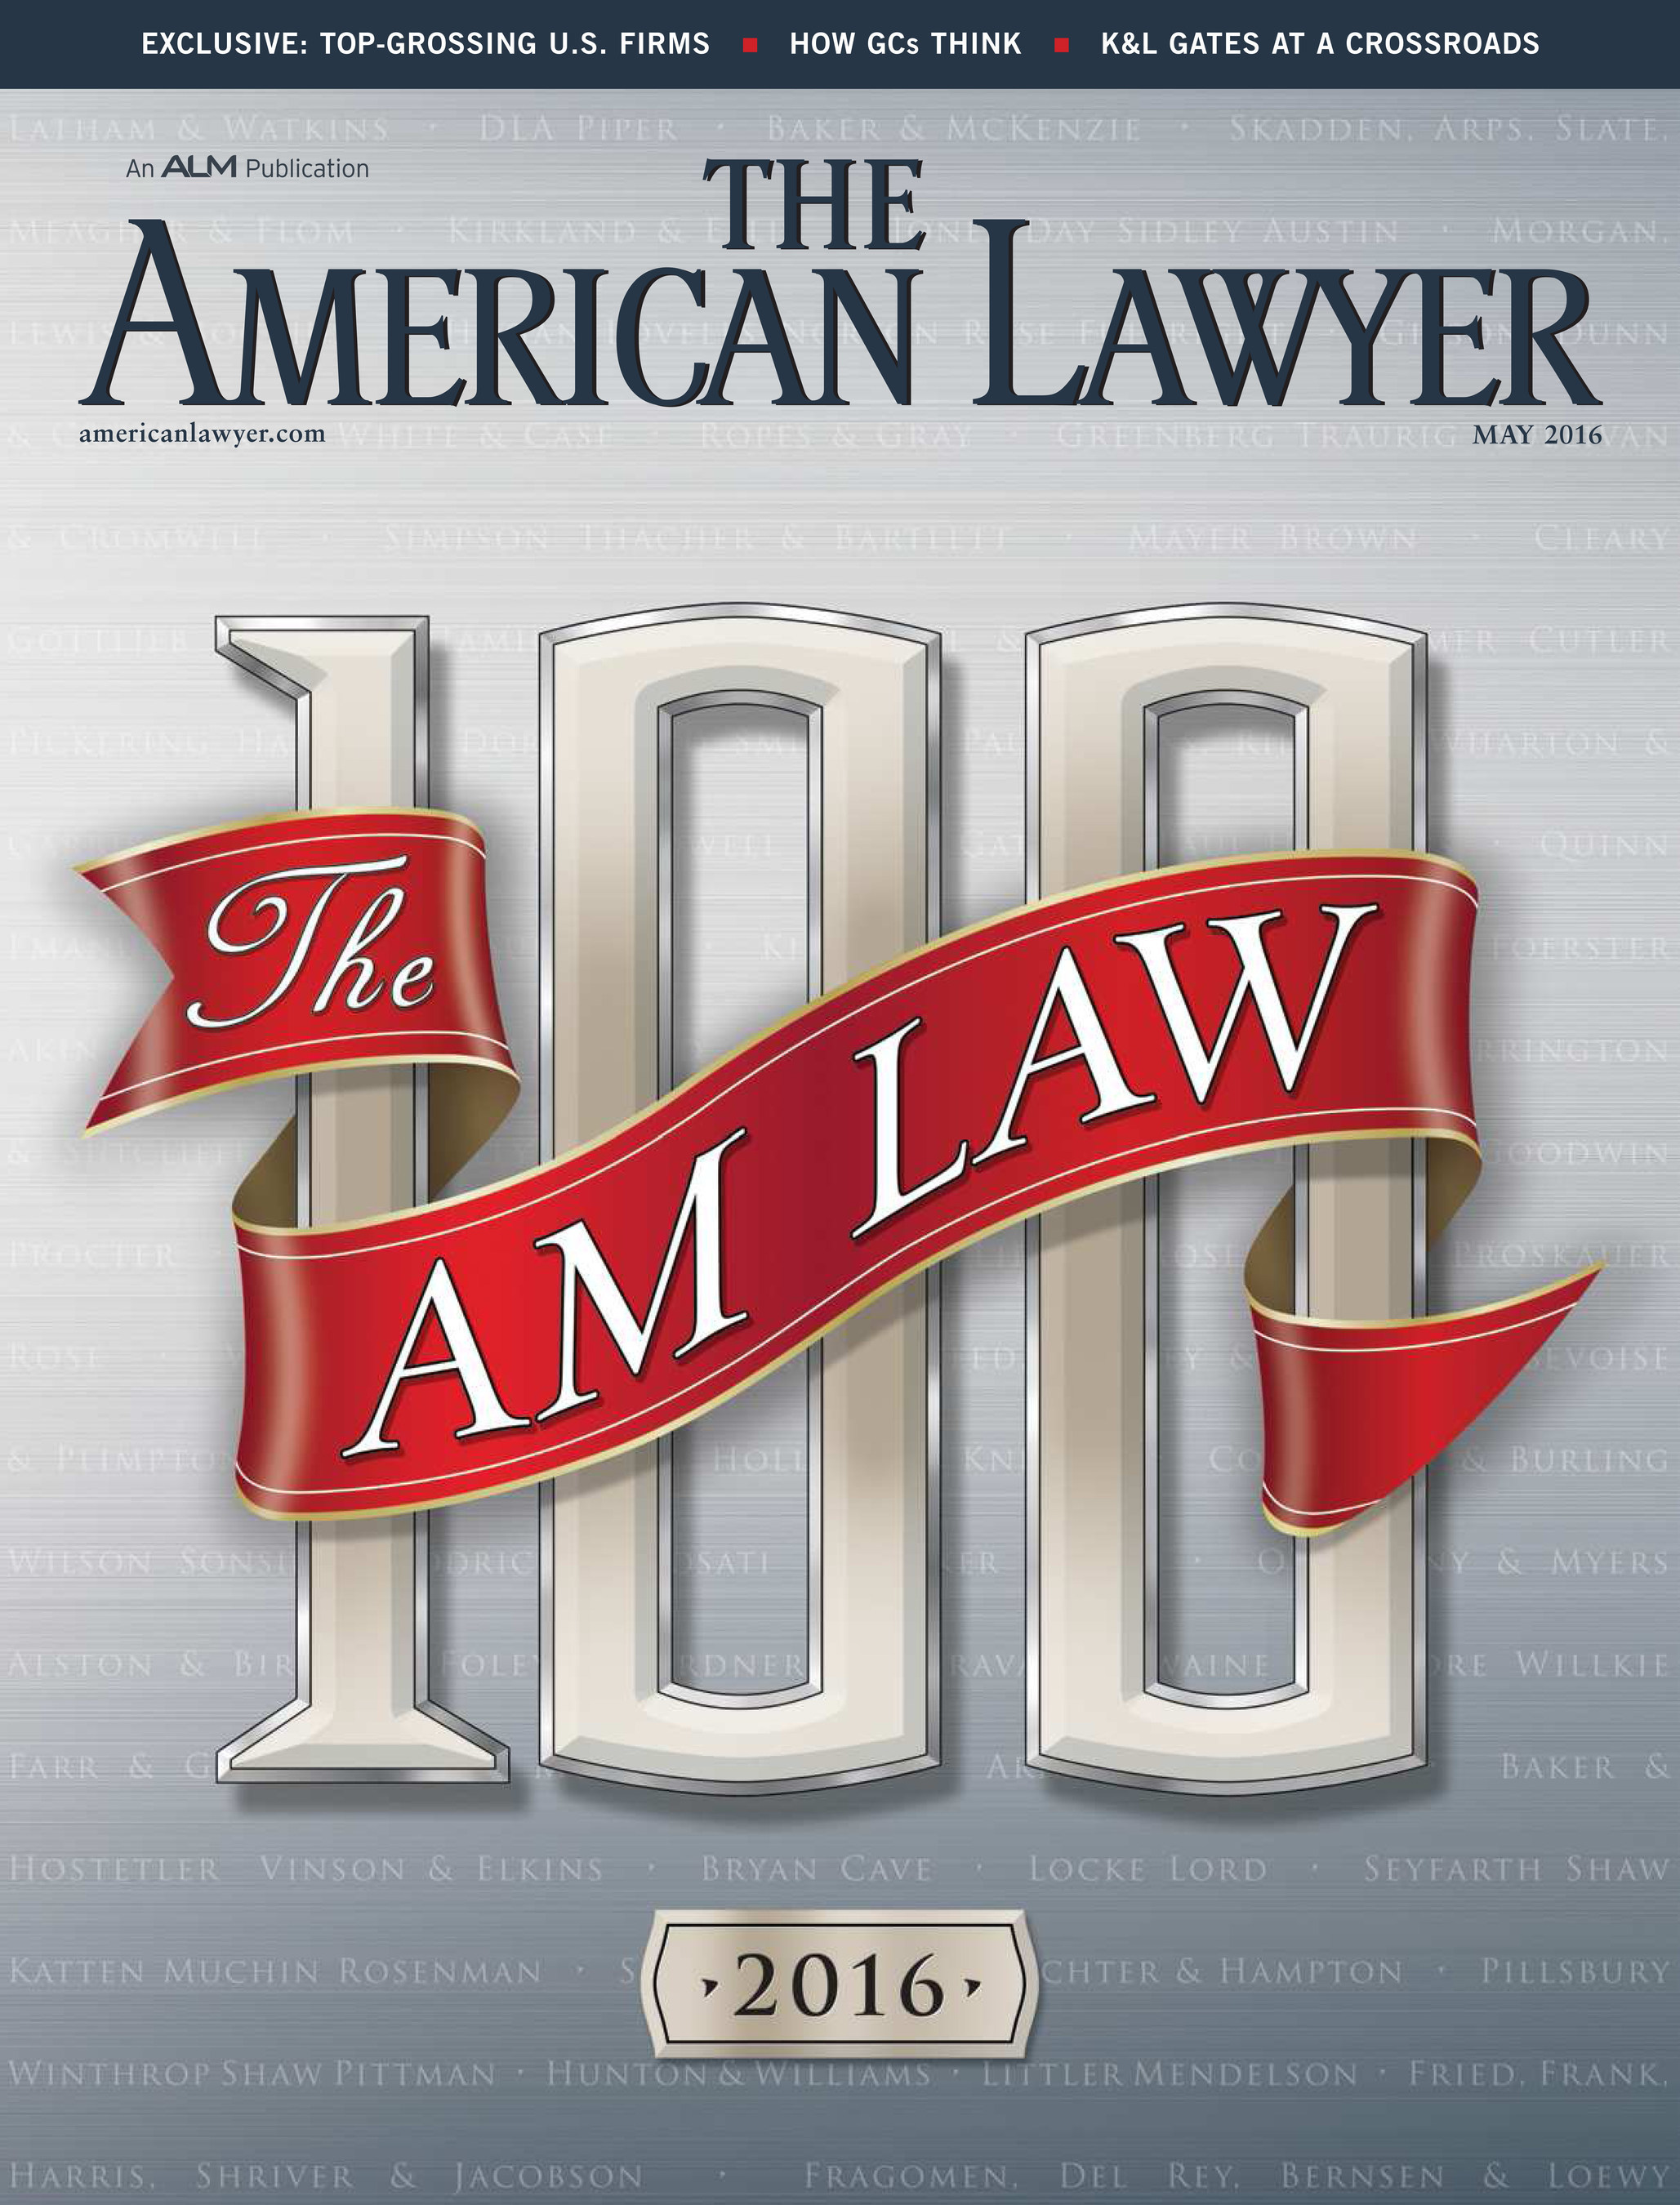 The American Lawyer May 2016 Issue